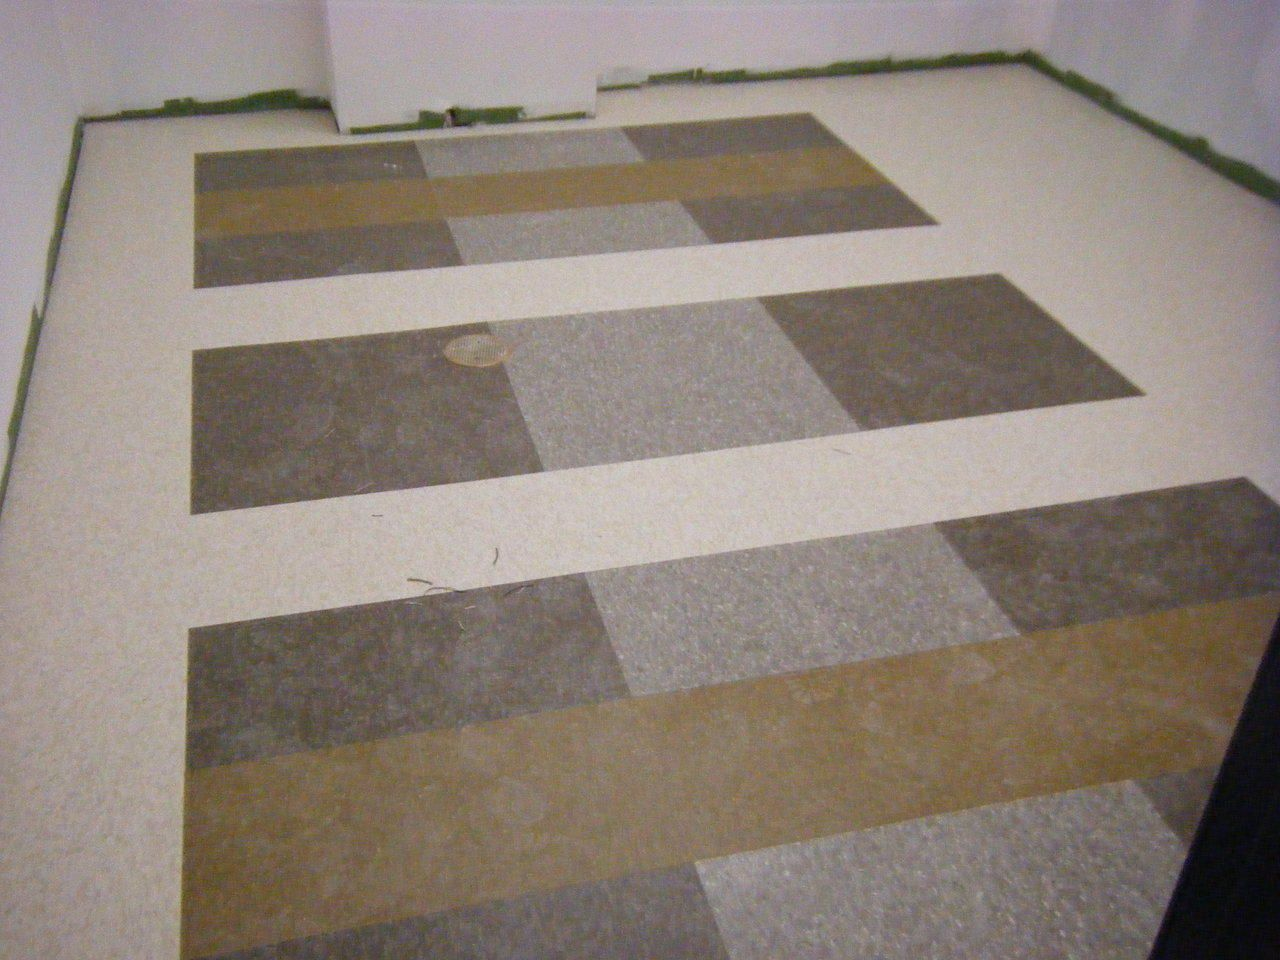 modern carpet tile patterns vct pattern reminds me of carpet tiles modern tile - Vct Pattern Ideas